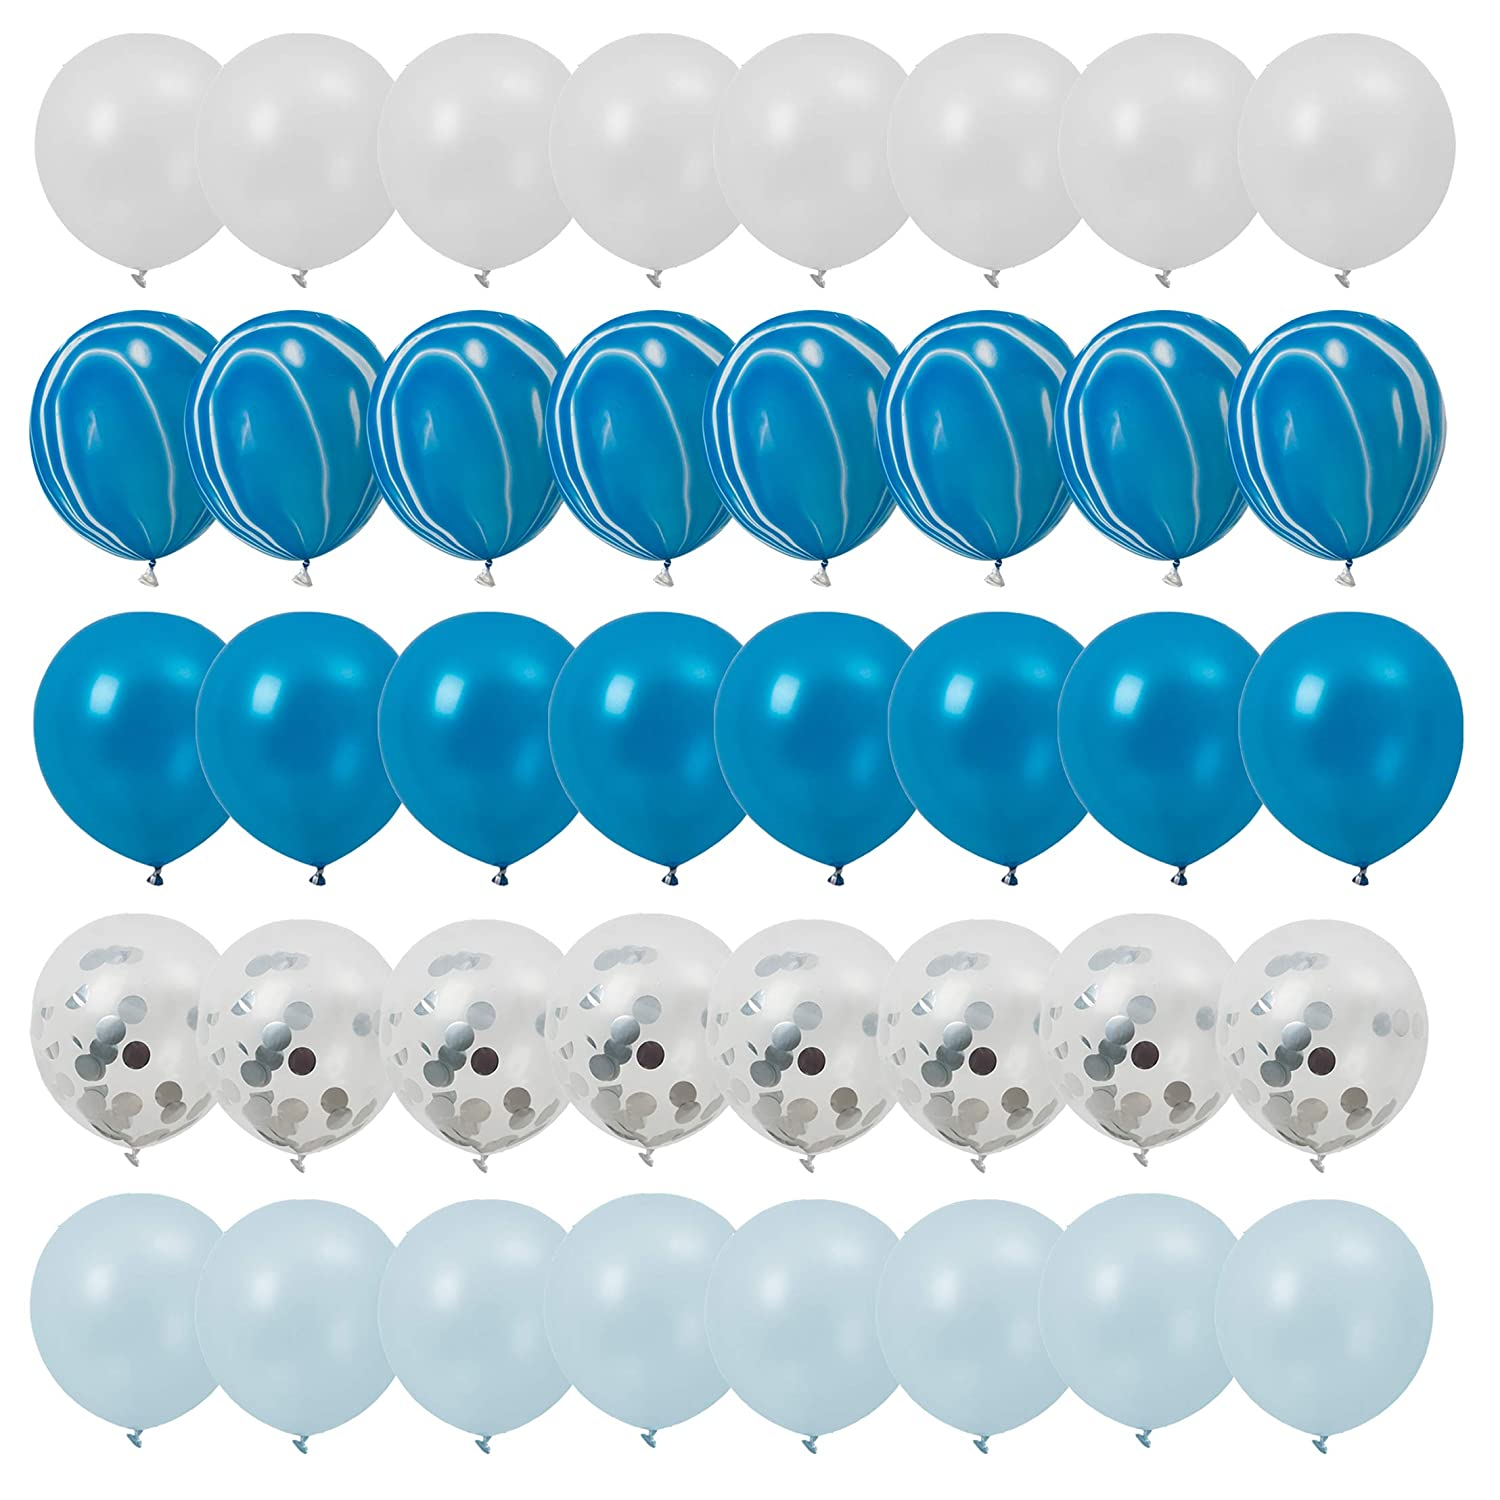 Latex Confetti Balloons,20 Pcs Blue and Sliver Biodegradable Balloon for Party Wedding Decoration Superate